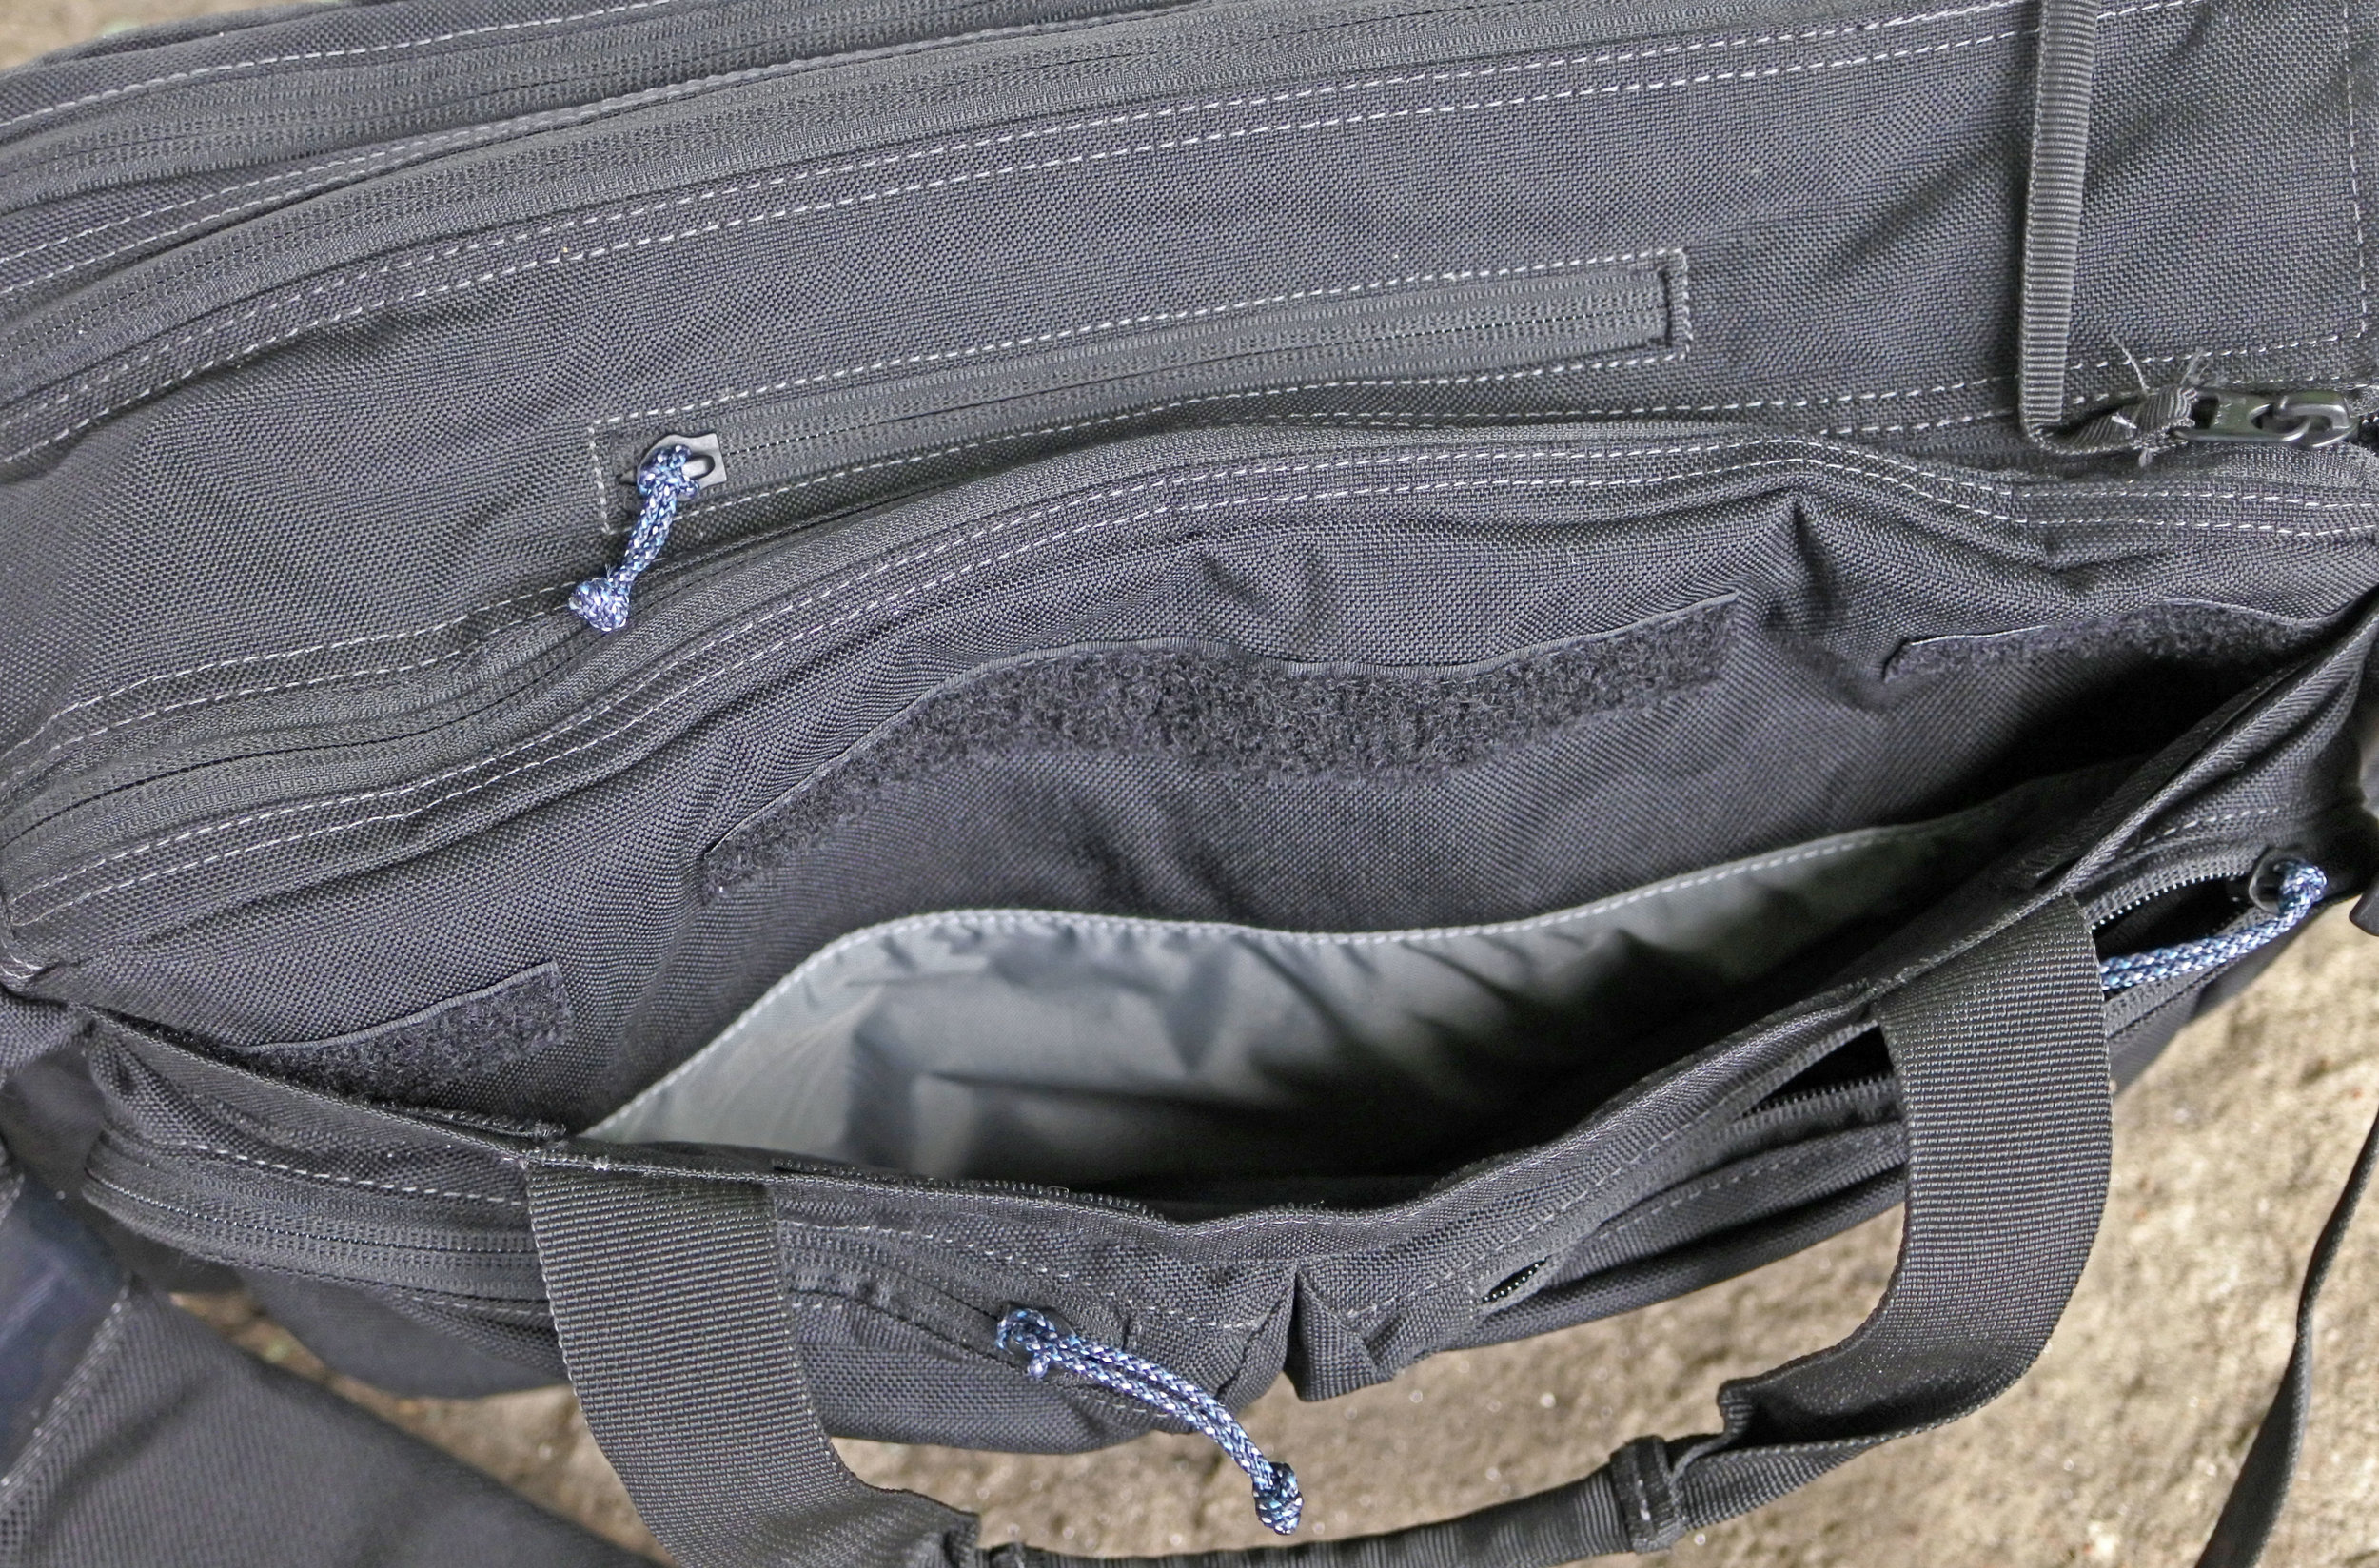 There is a hidden pocket on the front of the bag, under the admin pockets.